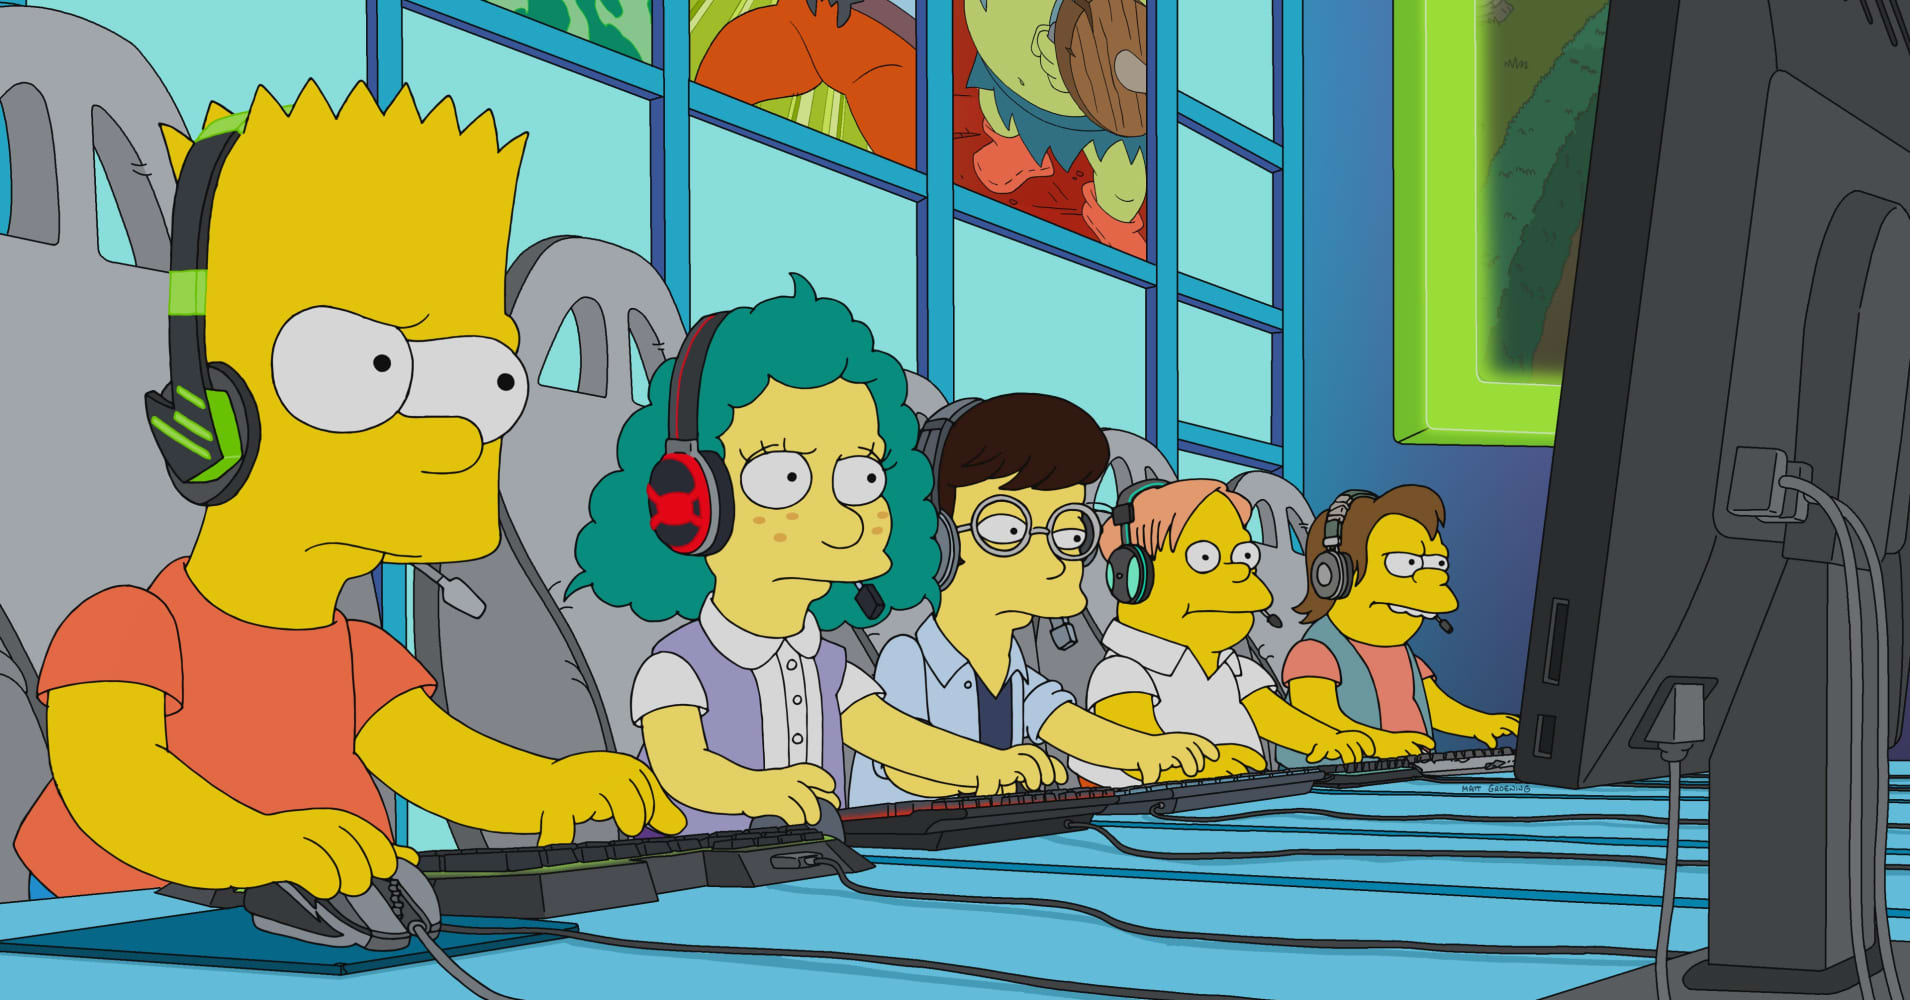 cnbc.com - Annie Pei - Esports just made its way onto 'The Simpsons' - here's why that matters